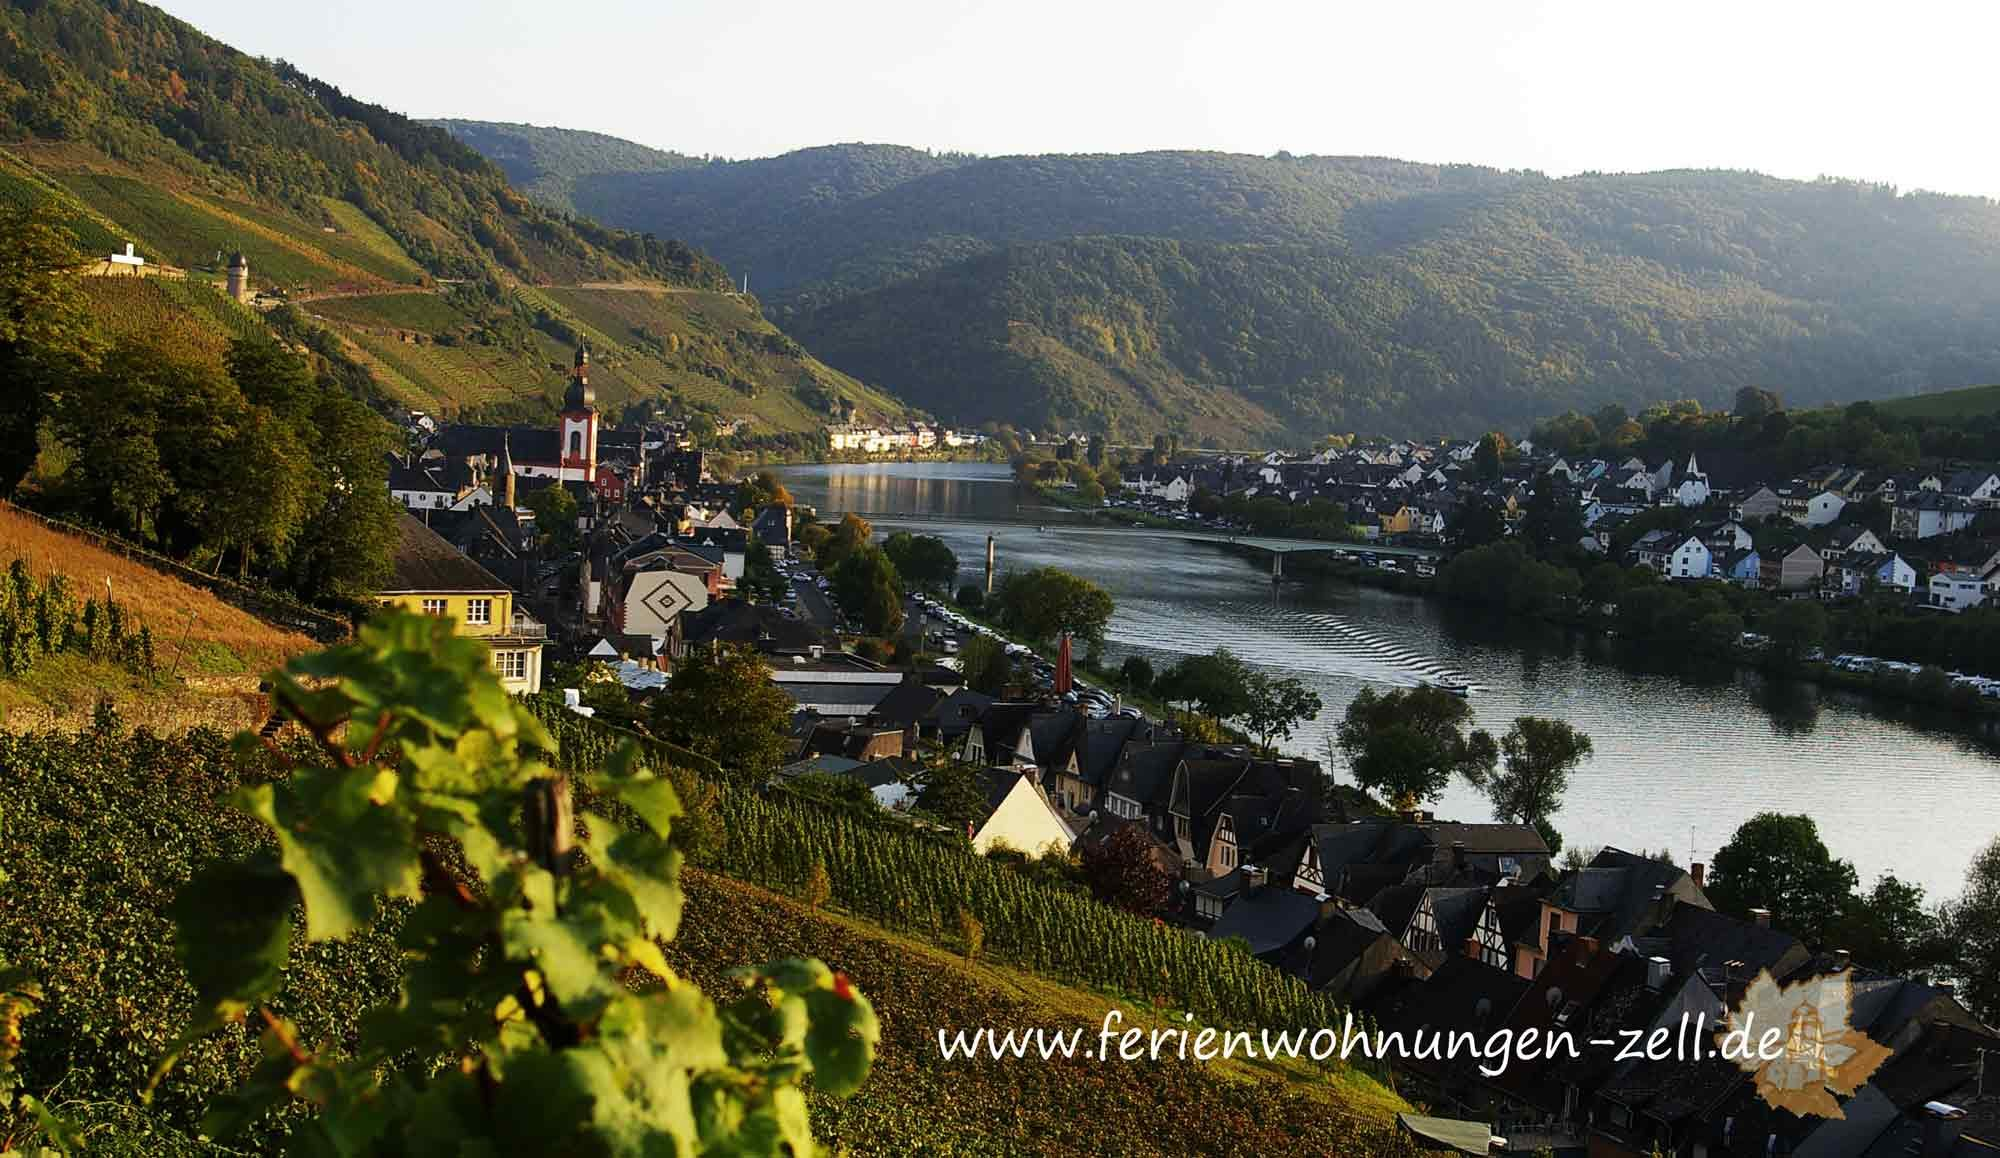 Wanderwege in Zell Mosel